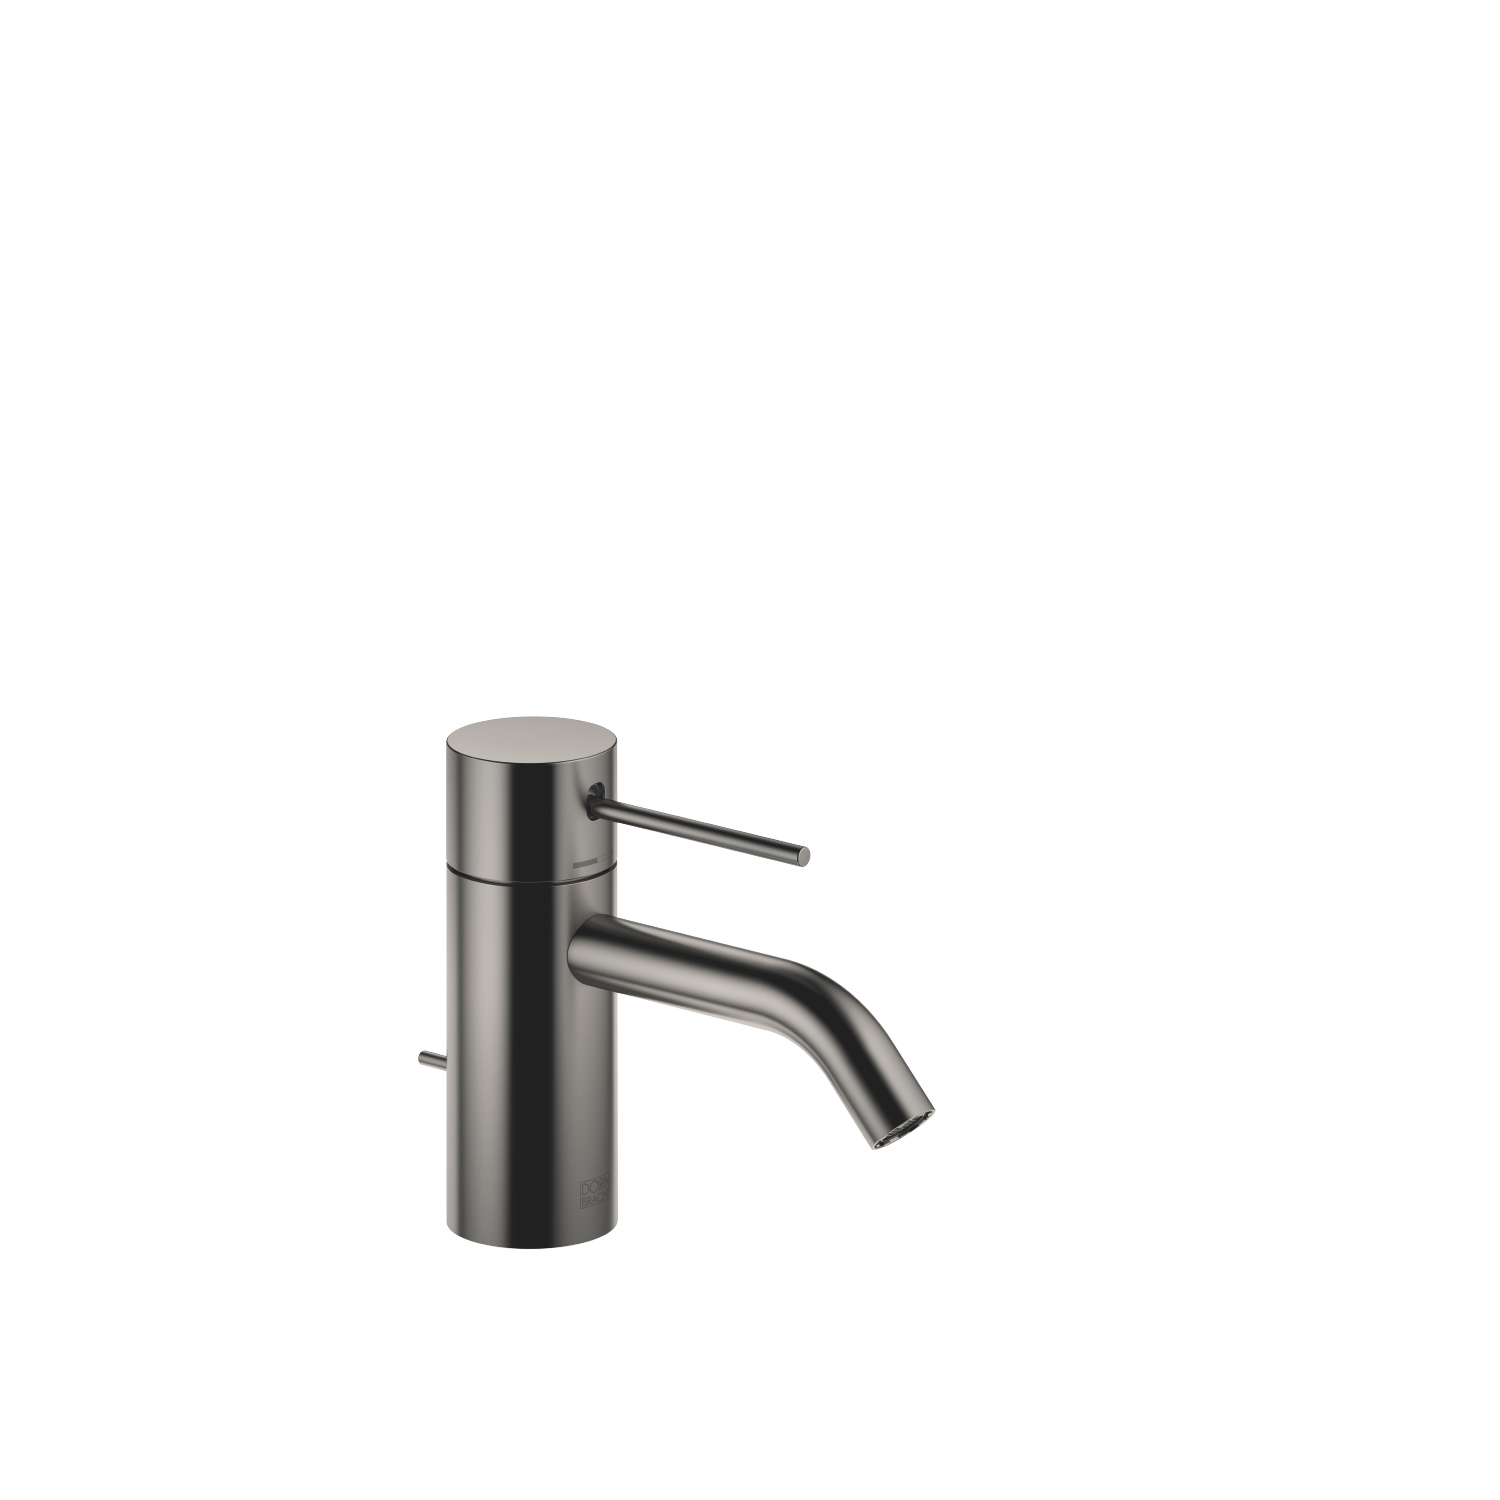 META SLIM Single-lever basin mixer with pop-up waste - Dark Platinum matt - 33 501 662-99